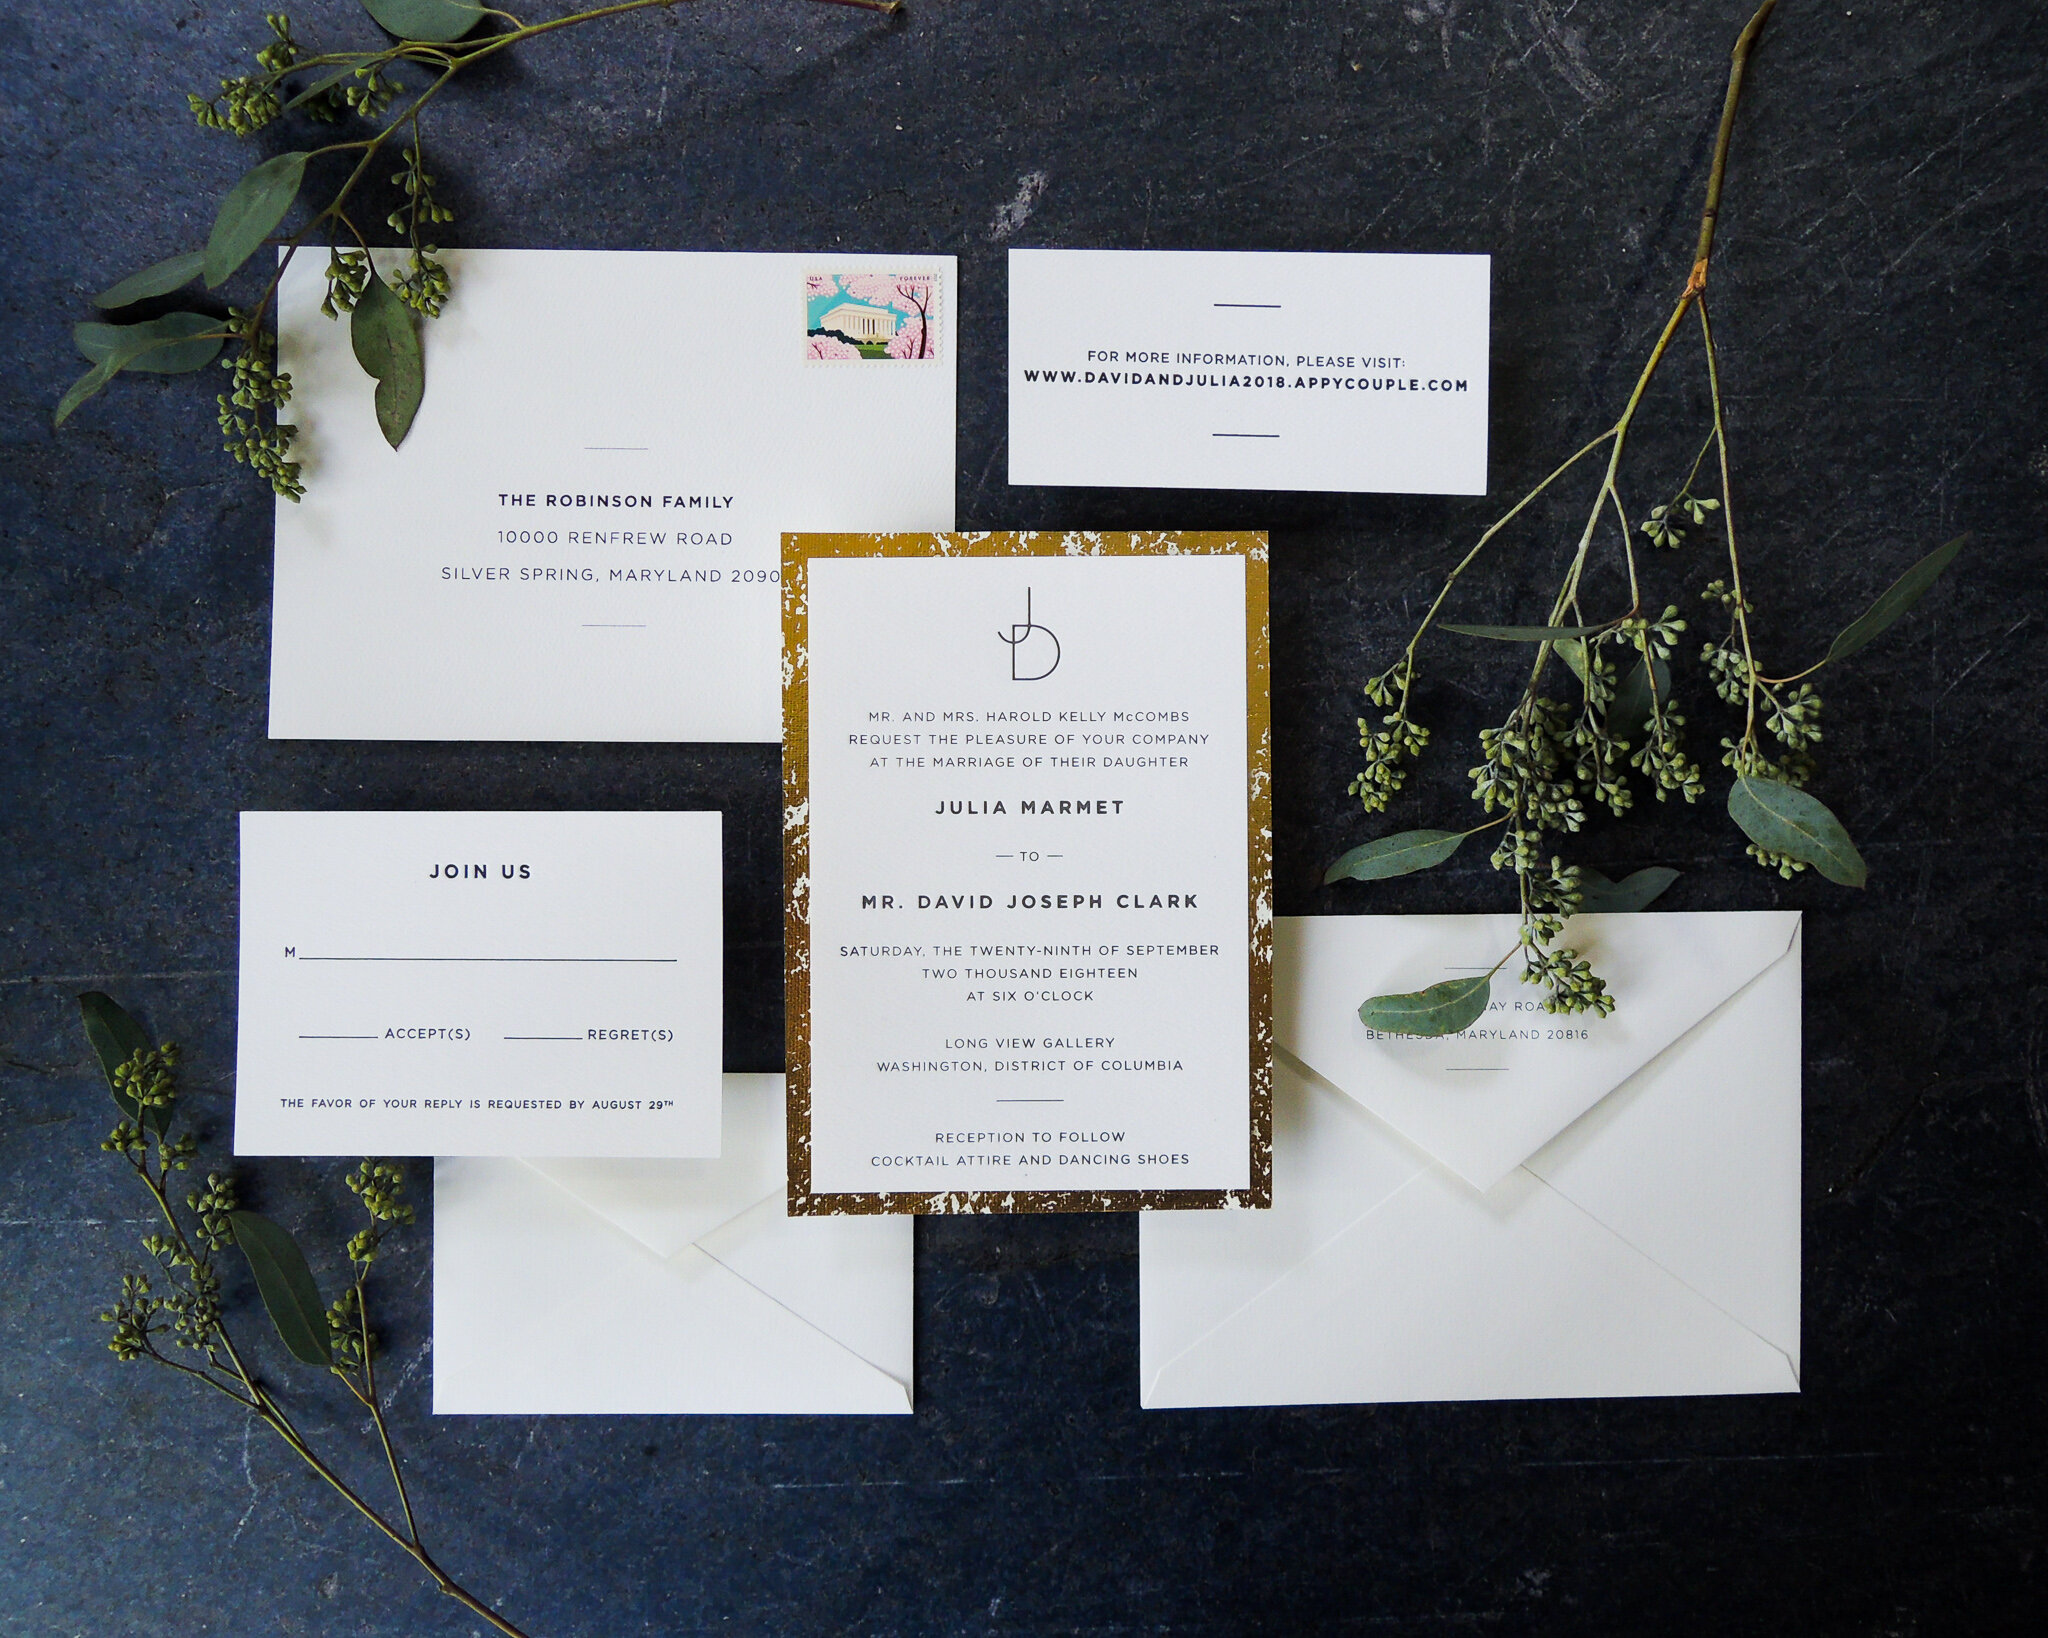 Features Shown: Letterpress, Handmade/Specialty Paper Backing, Two-Sided Digital Addressing